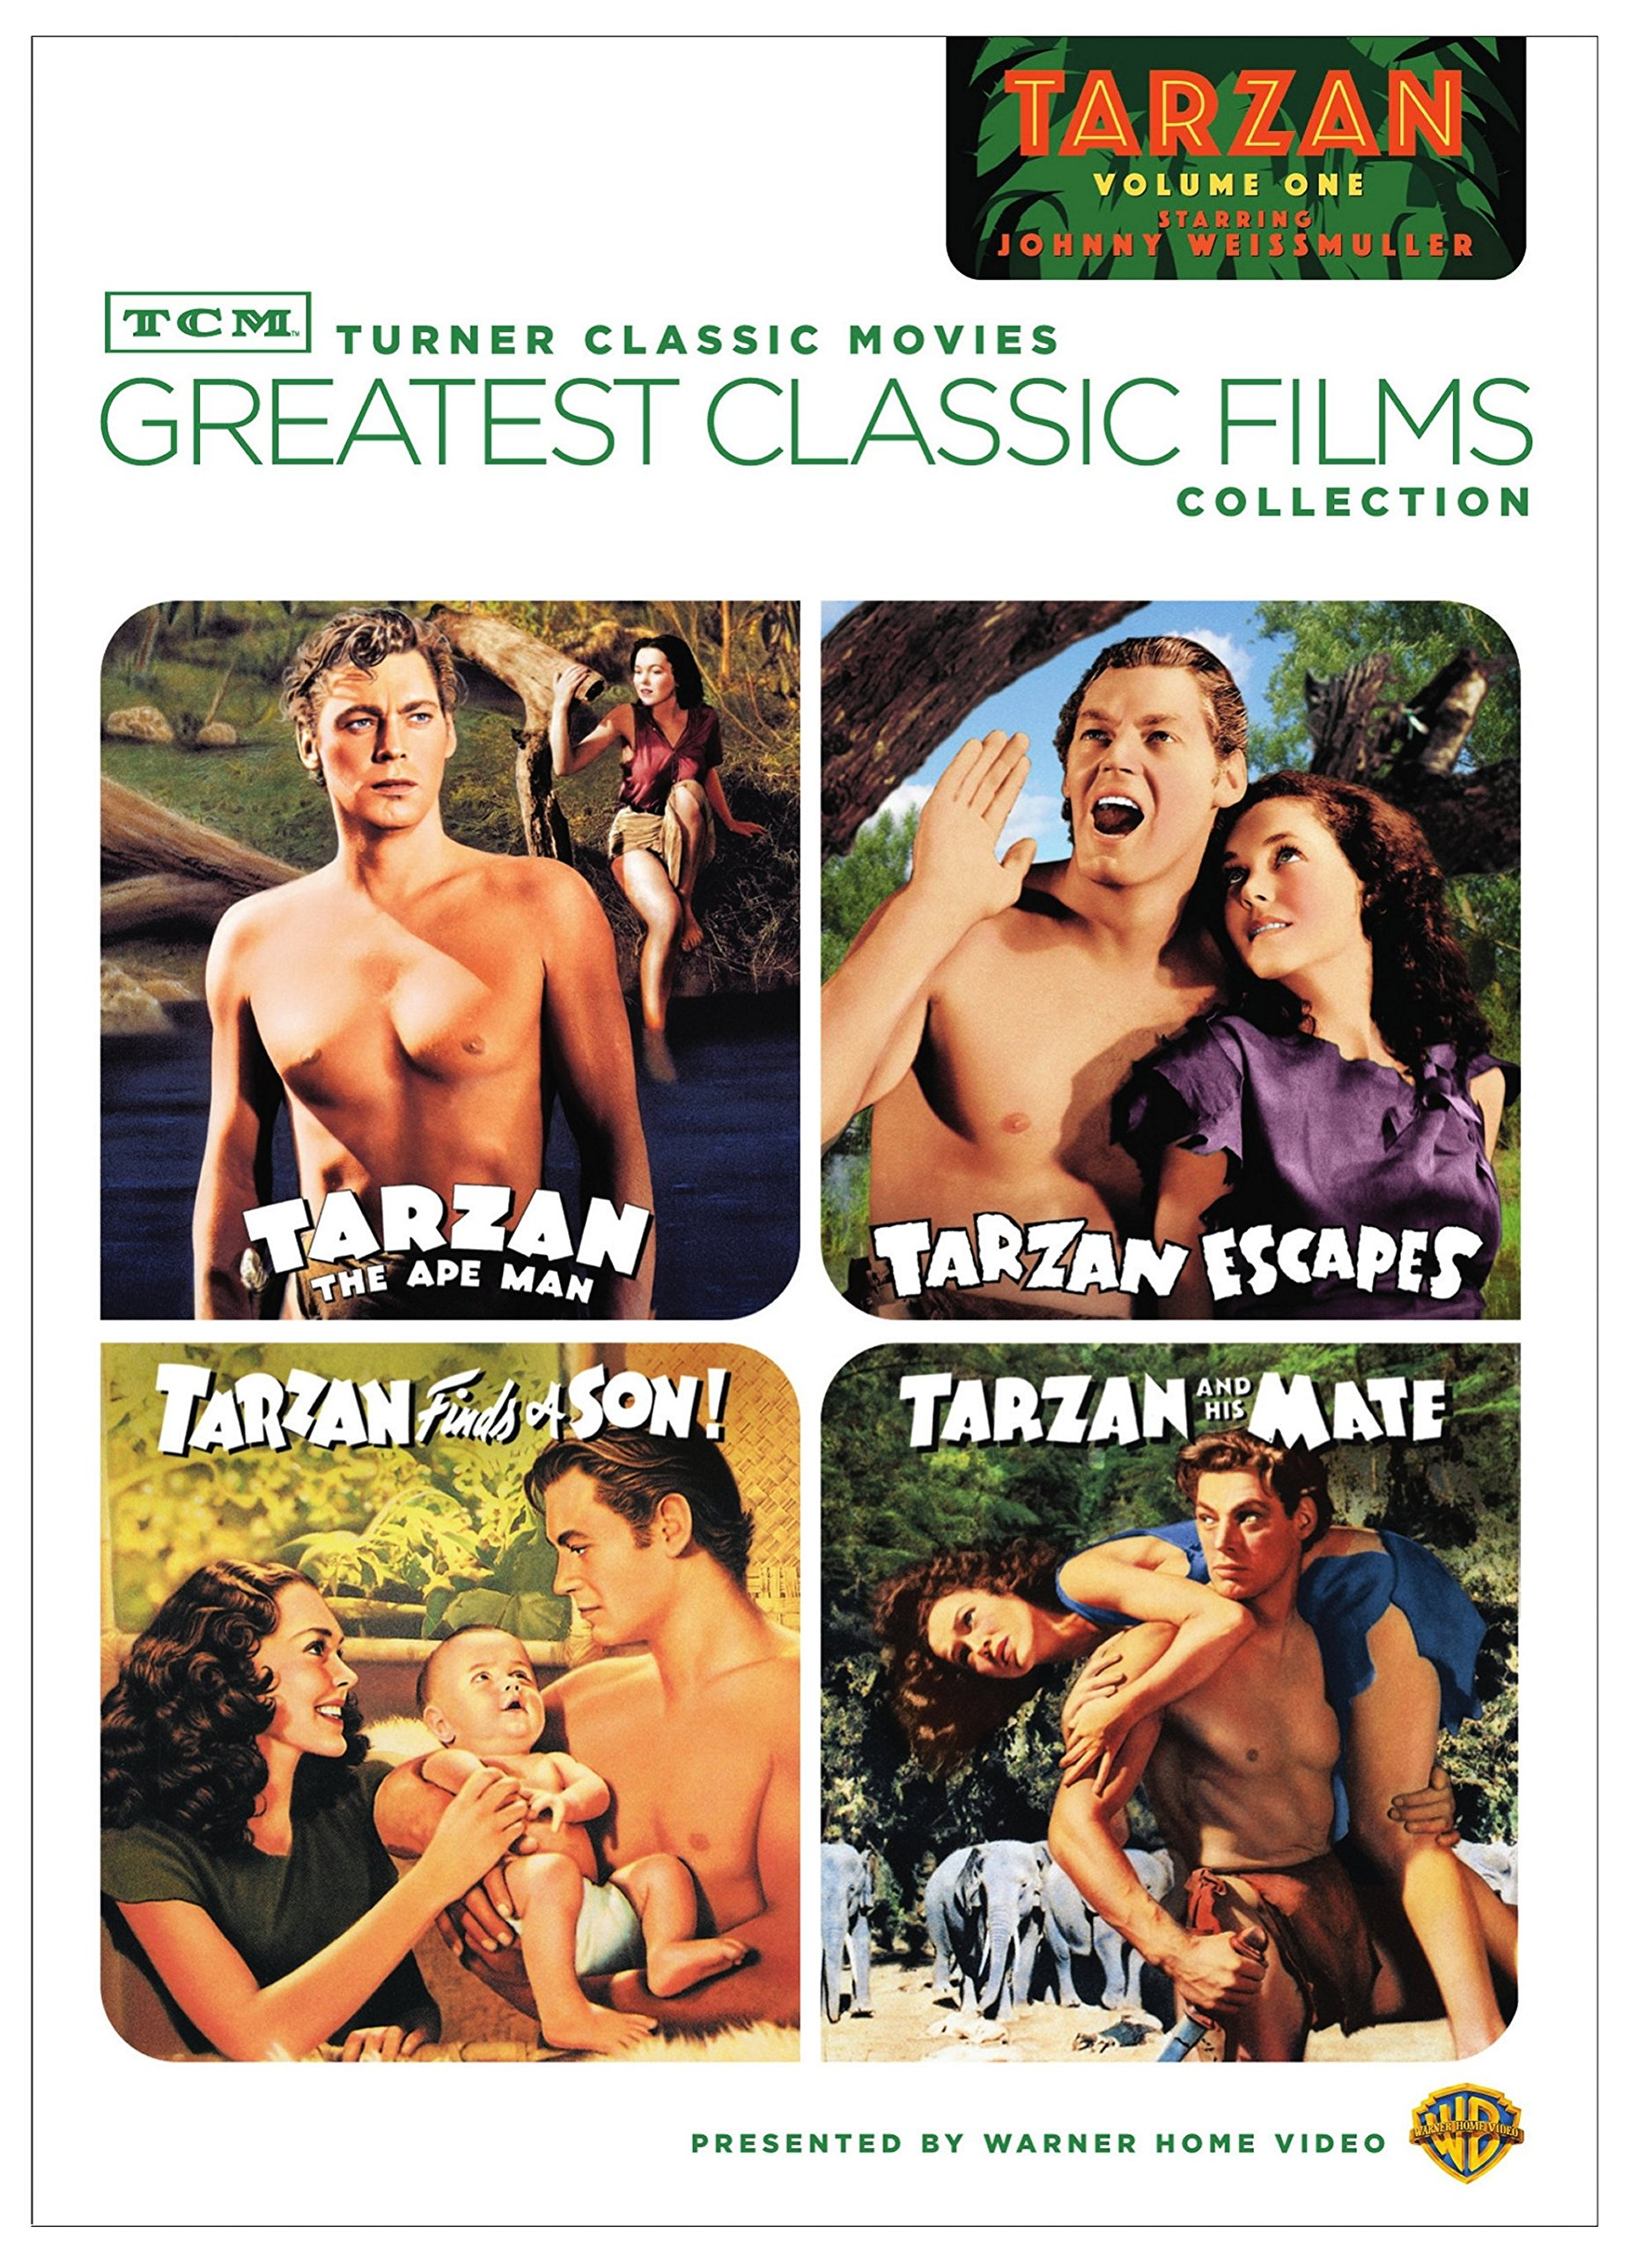 Greatest classic Films Collection: Tarzan - Volume one (Tarzan the Ape Man / Tarzan Escapes / Tarzan Finds a Son! / Tarzan and His Mate) by Warner Bros